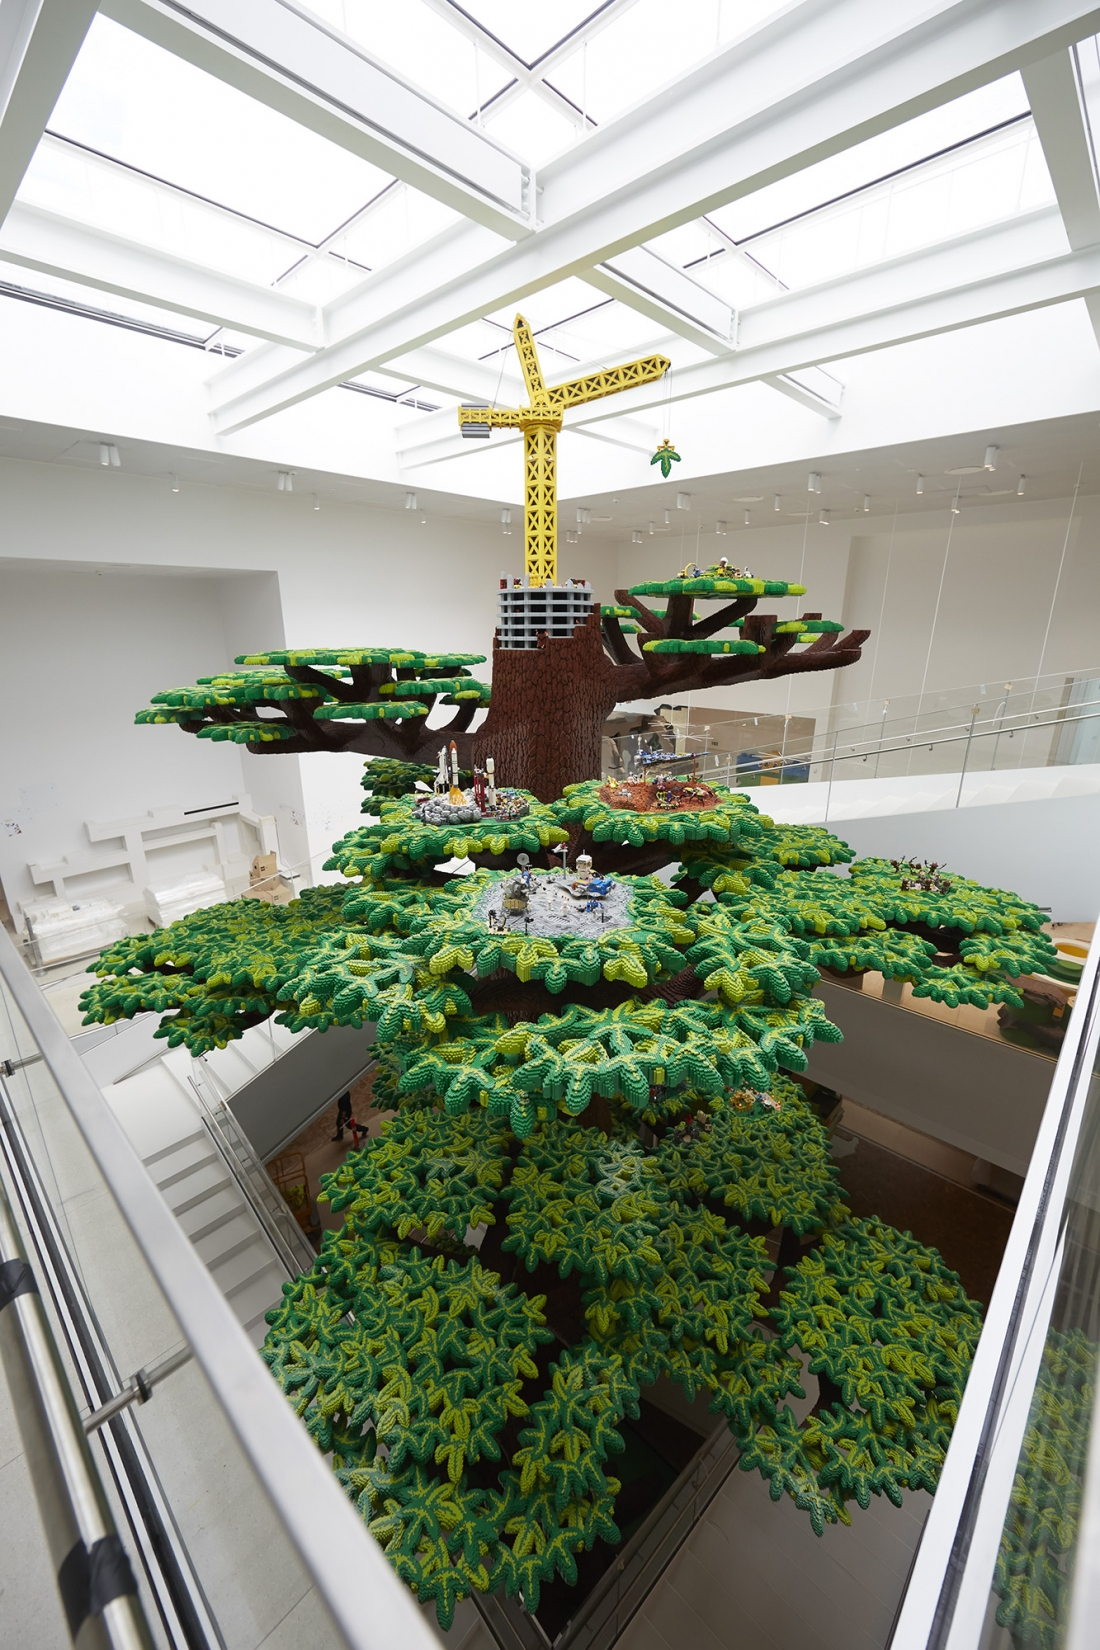 LEGO House: A new home of the brick in Denmark that offers the